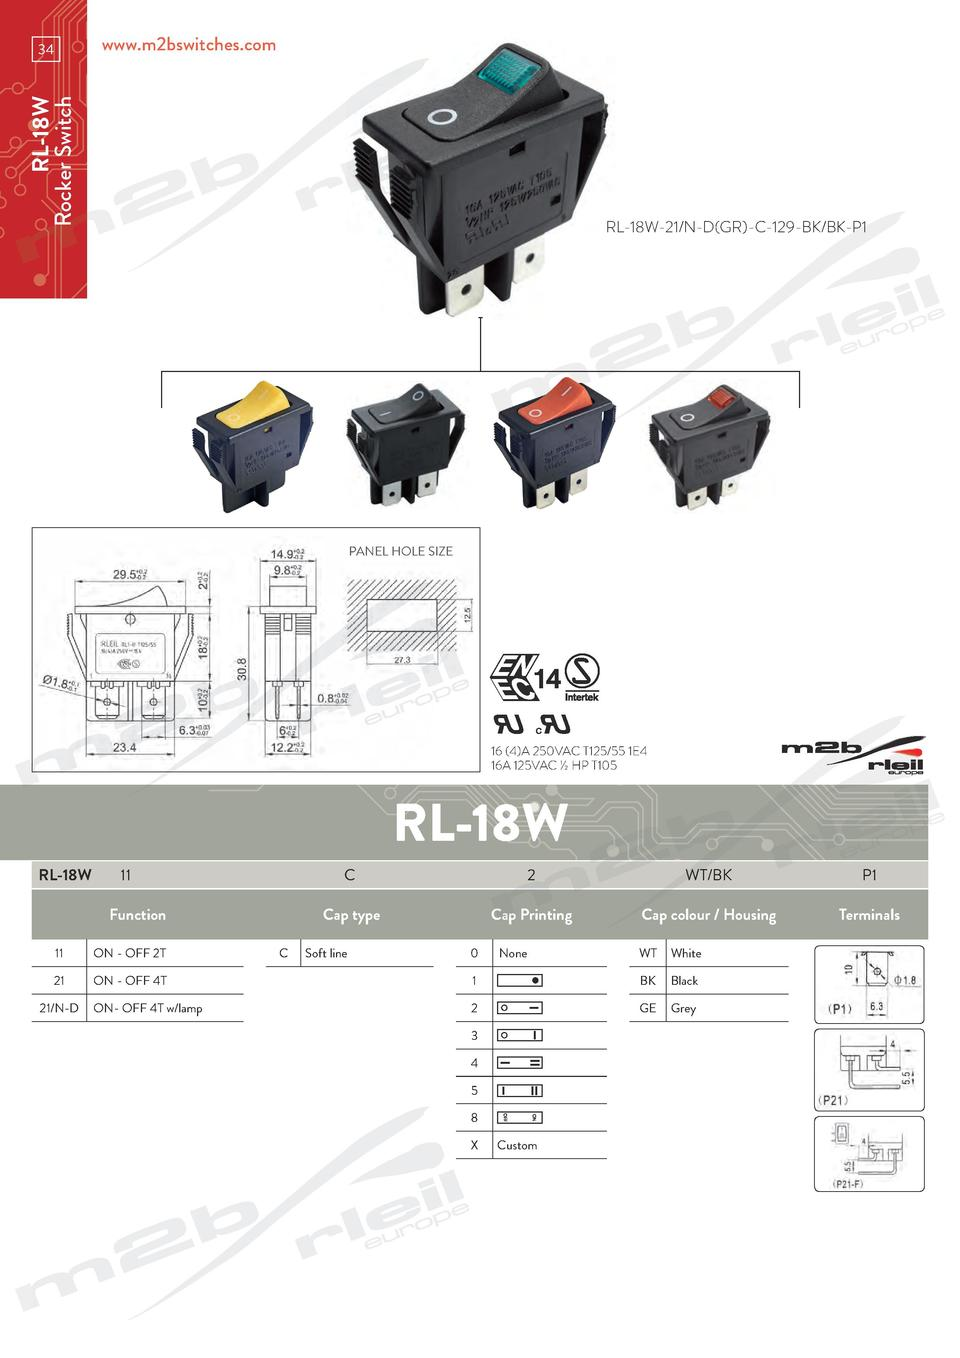 www.m2bswitches.com  RL-18W Rocker Switch  34  RL-18W-21 N-D GR -C-129-BK BK-P1  PANEL HOLE SIZE  We switch on you  16  4 ...